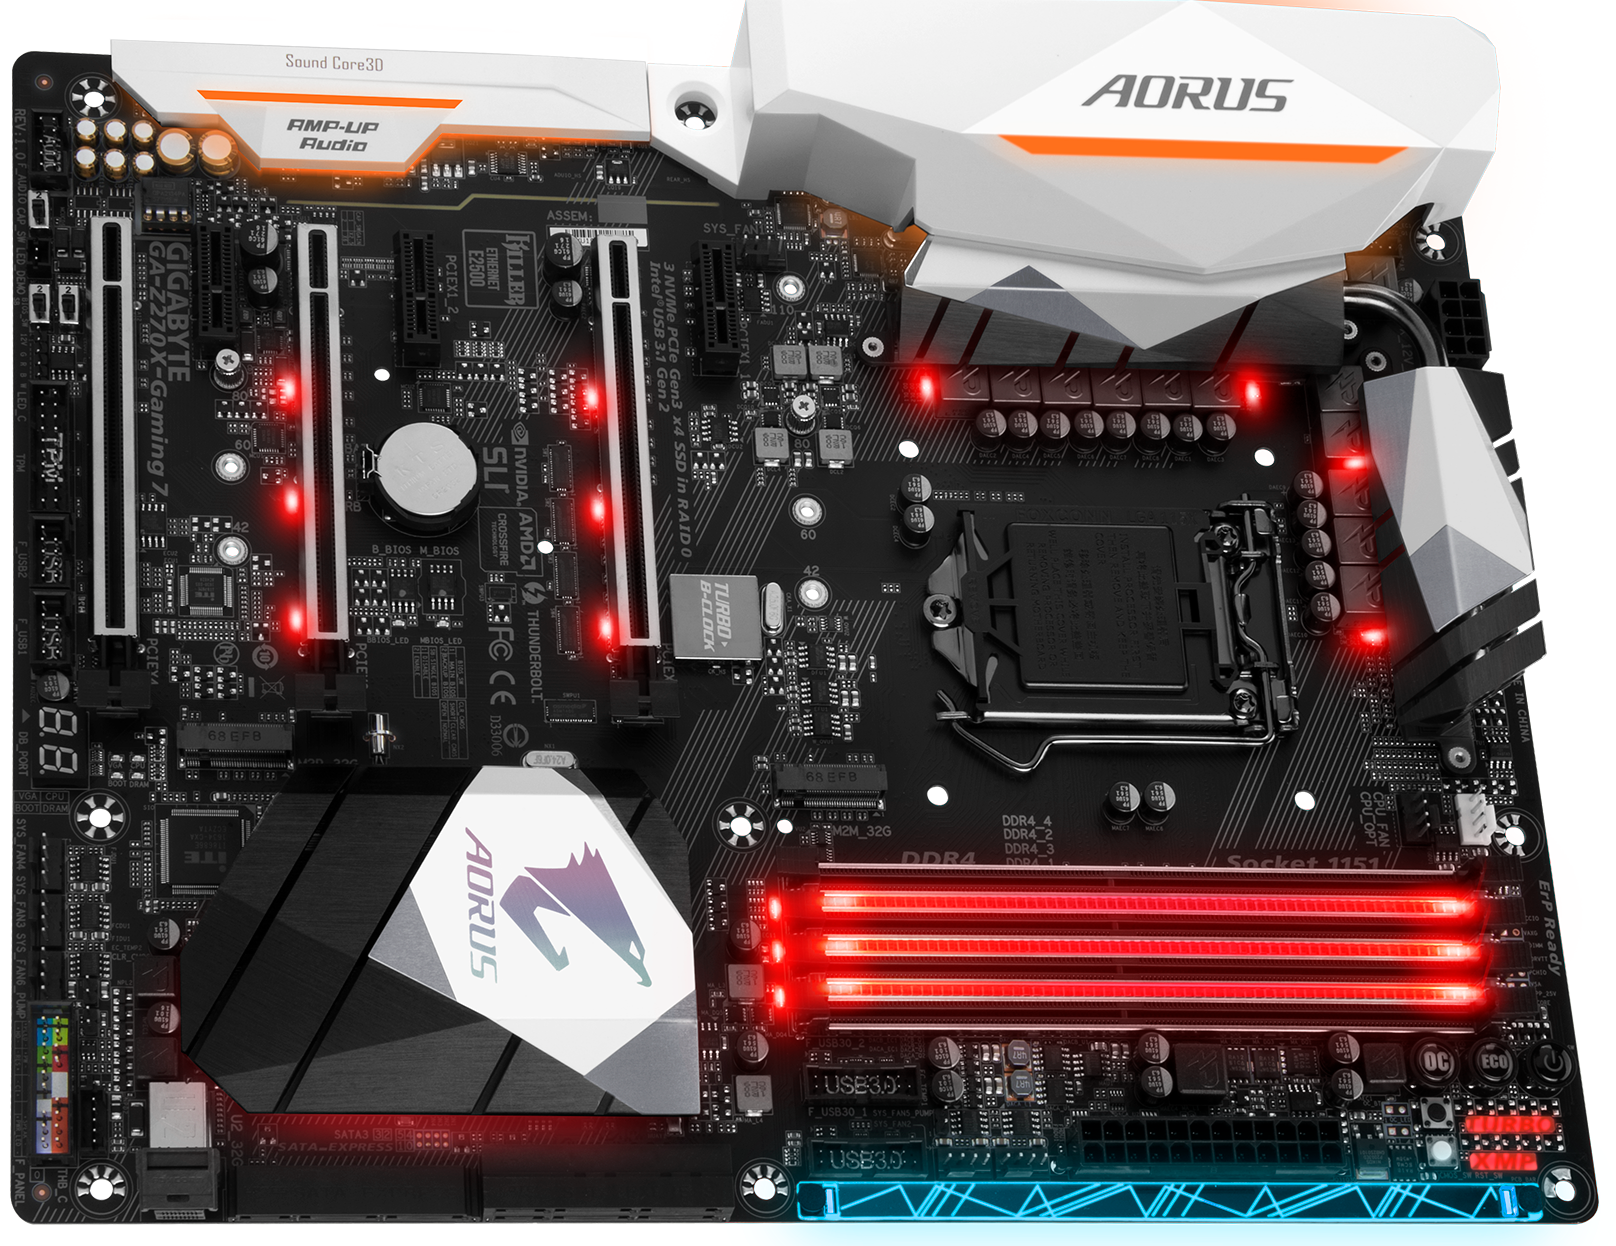 Review: Gigabyte/Aorus Z270X-Gaming 7 - Mainboard - HEXUS net